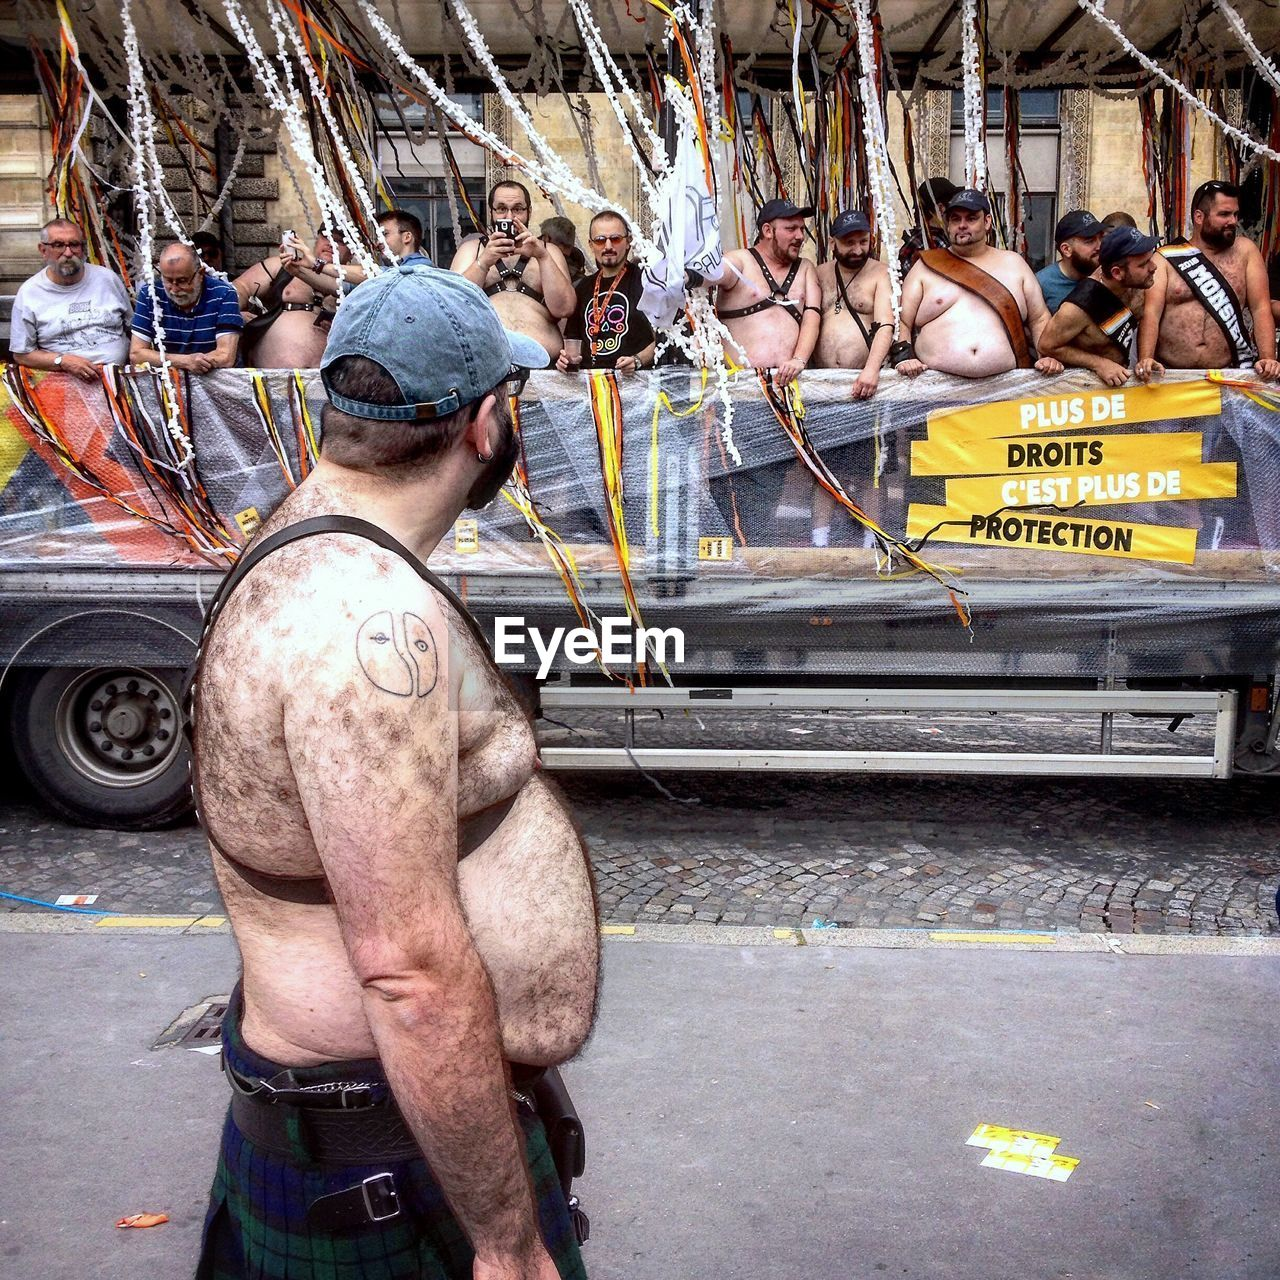 men, real people, occupation, transportation, large group of people, outdoors, day, city, working, adult, people, adults only